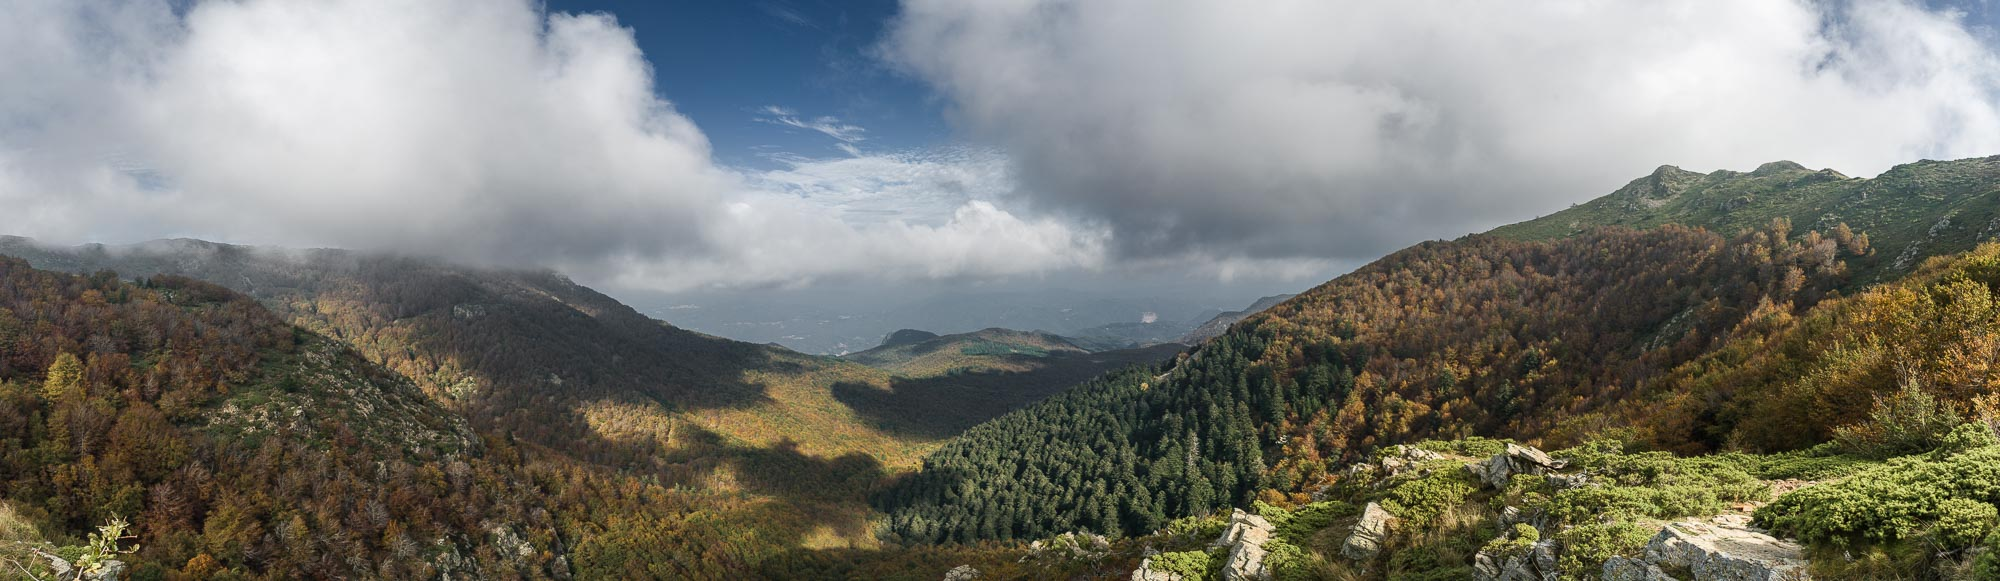 Montseny Panorama (click to enlarge)